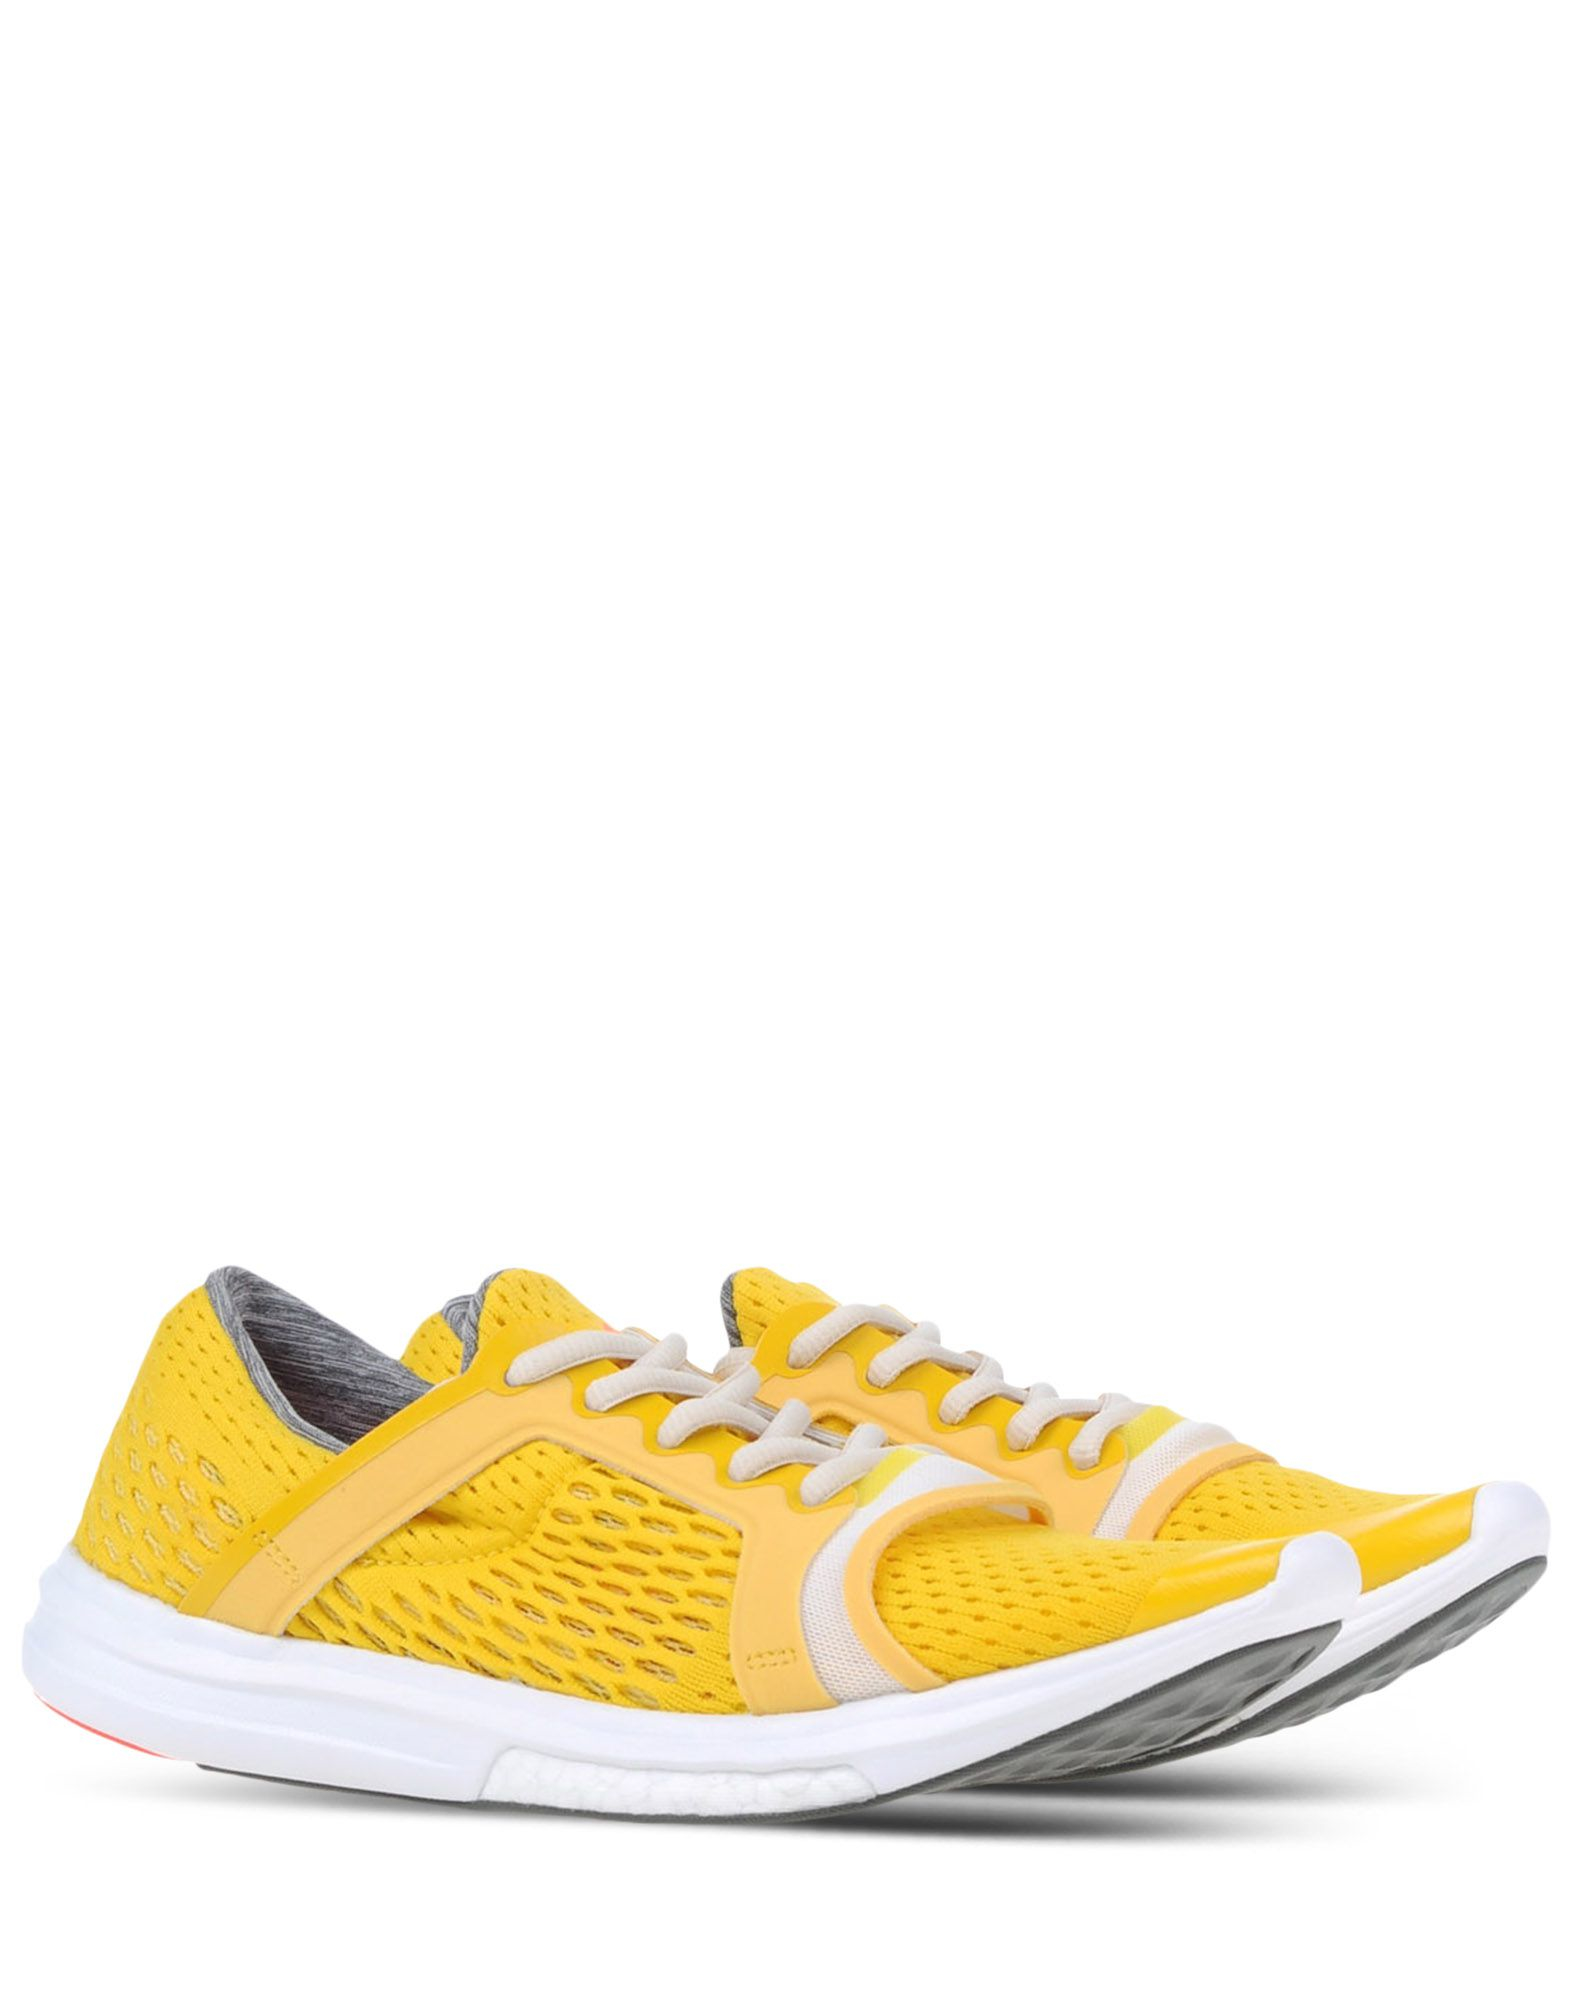 adidas by stella mccartney low tops trainers in yellow. Black Bedroom Furniture Sets. Home Design Ideas